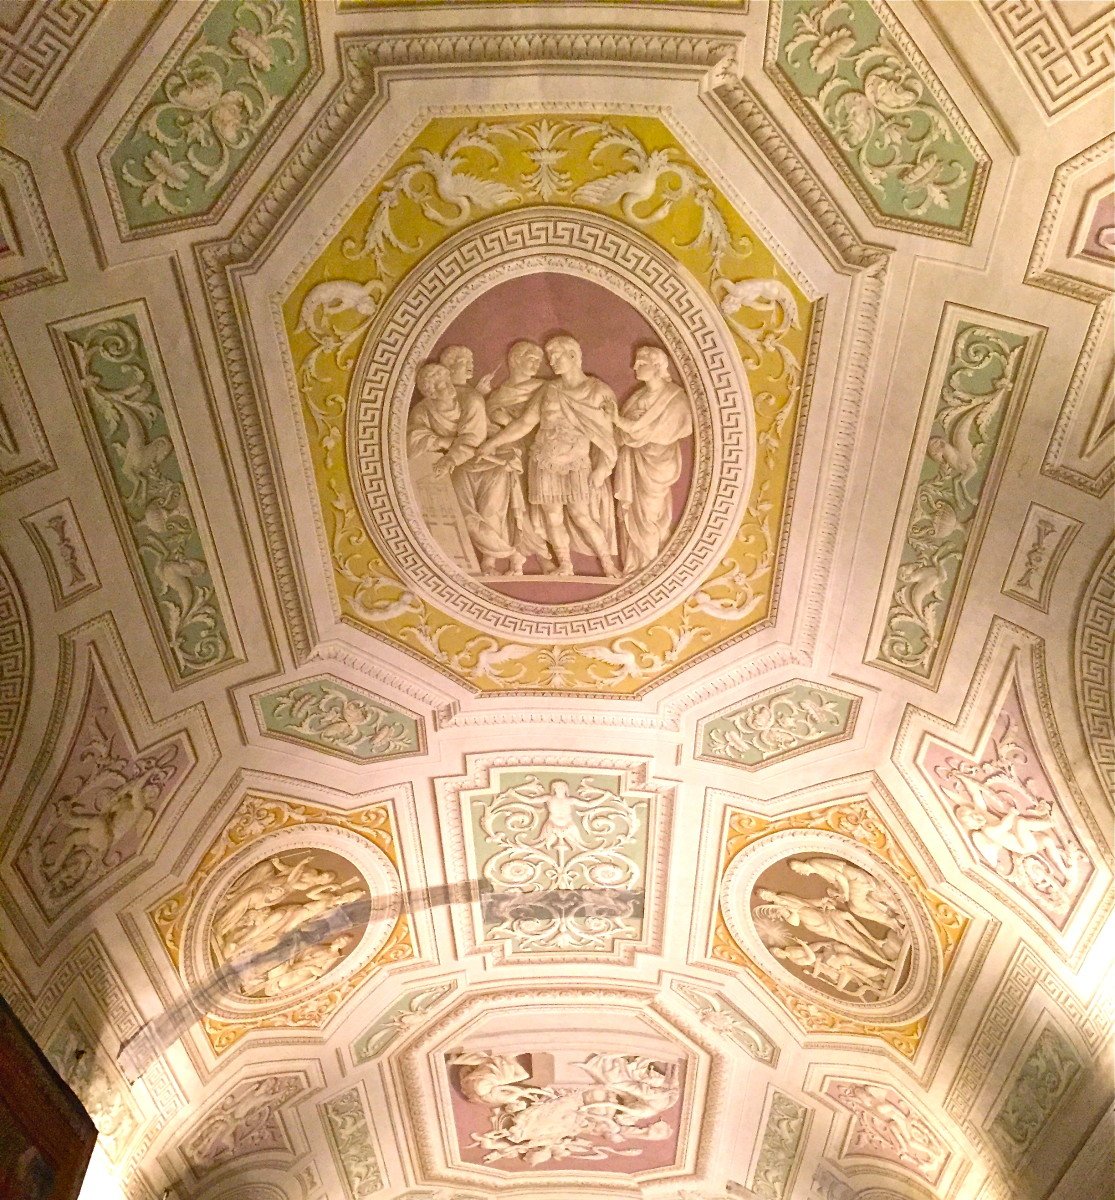 A ceiling in the Vatican Museums gives the illusion of a carved bas relief, however it is actually flat painting using painted shadows to give the illusion.